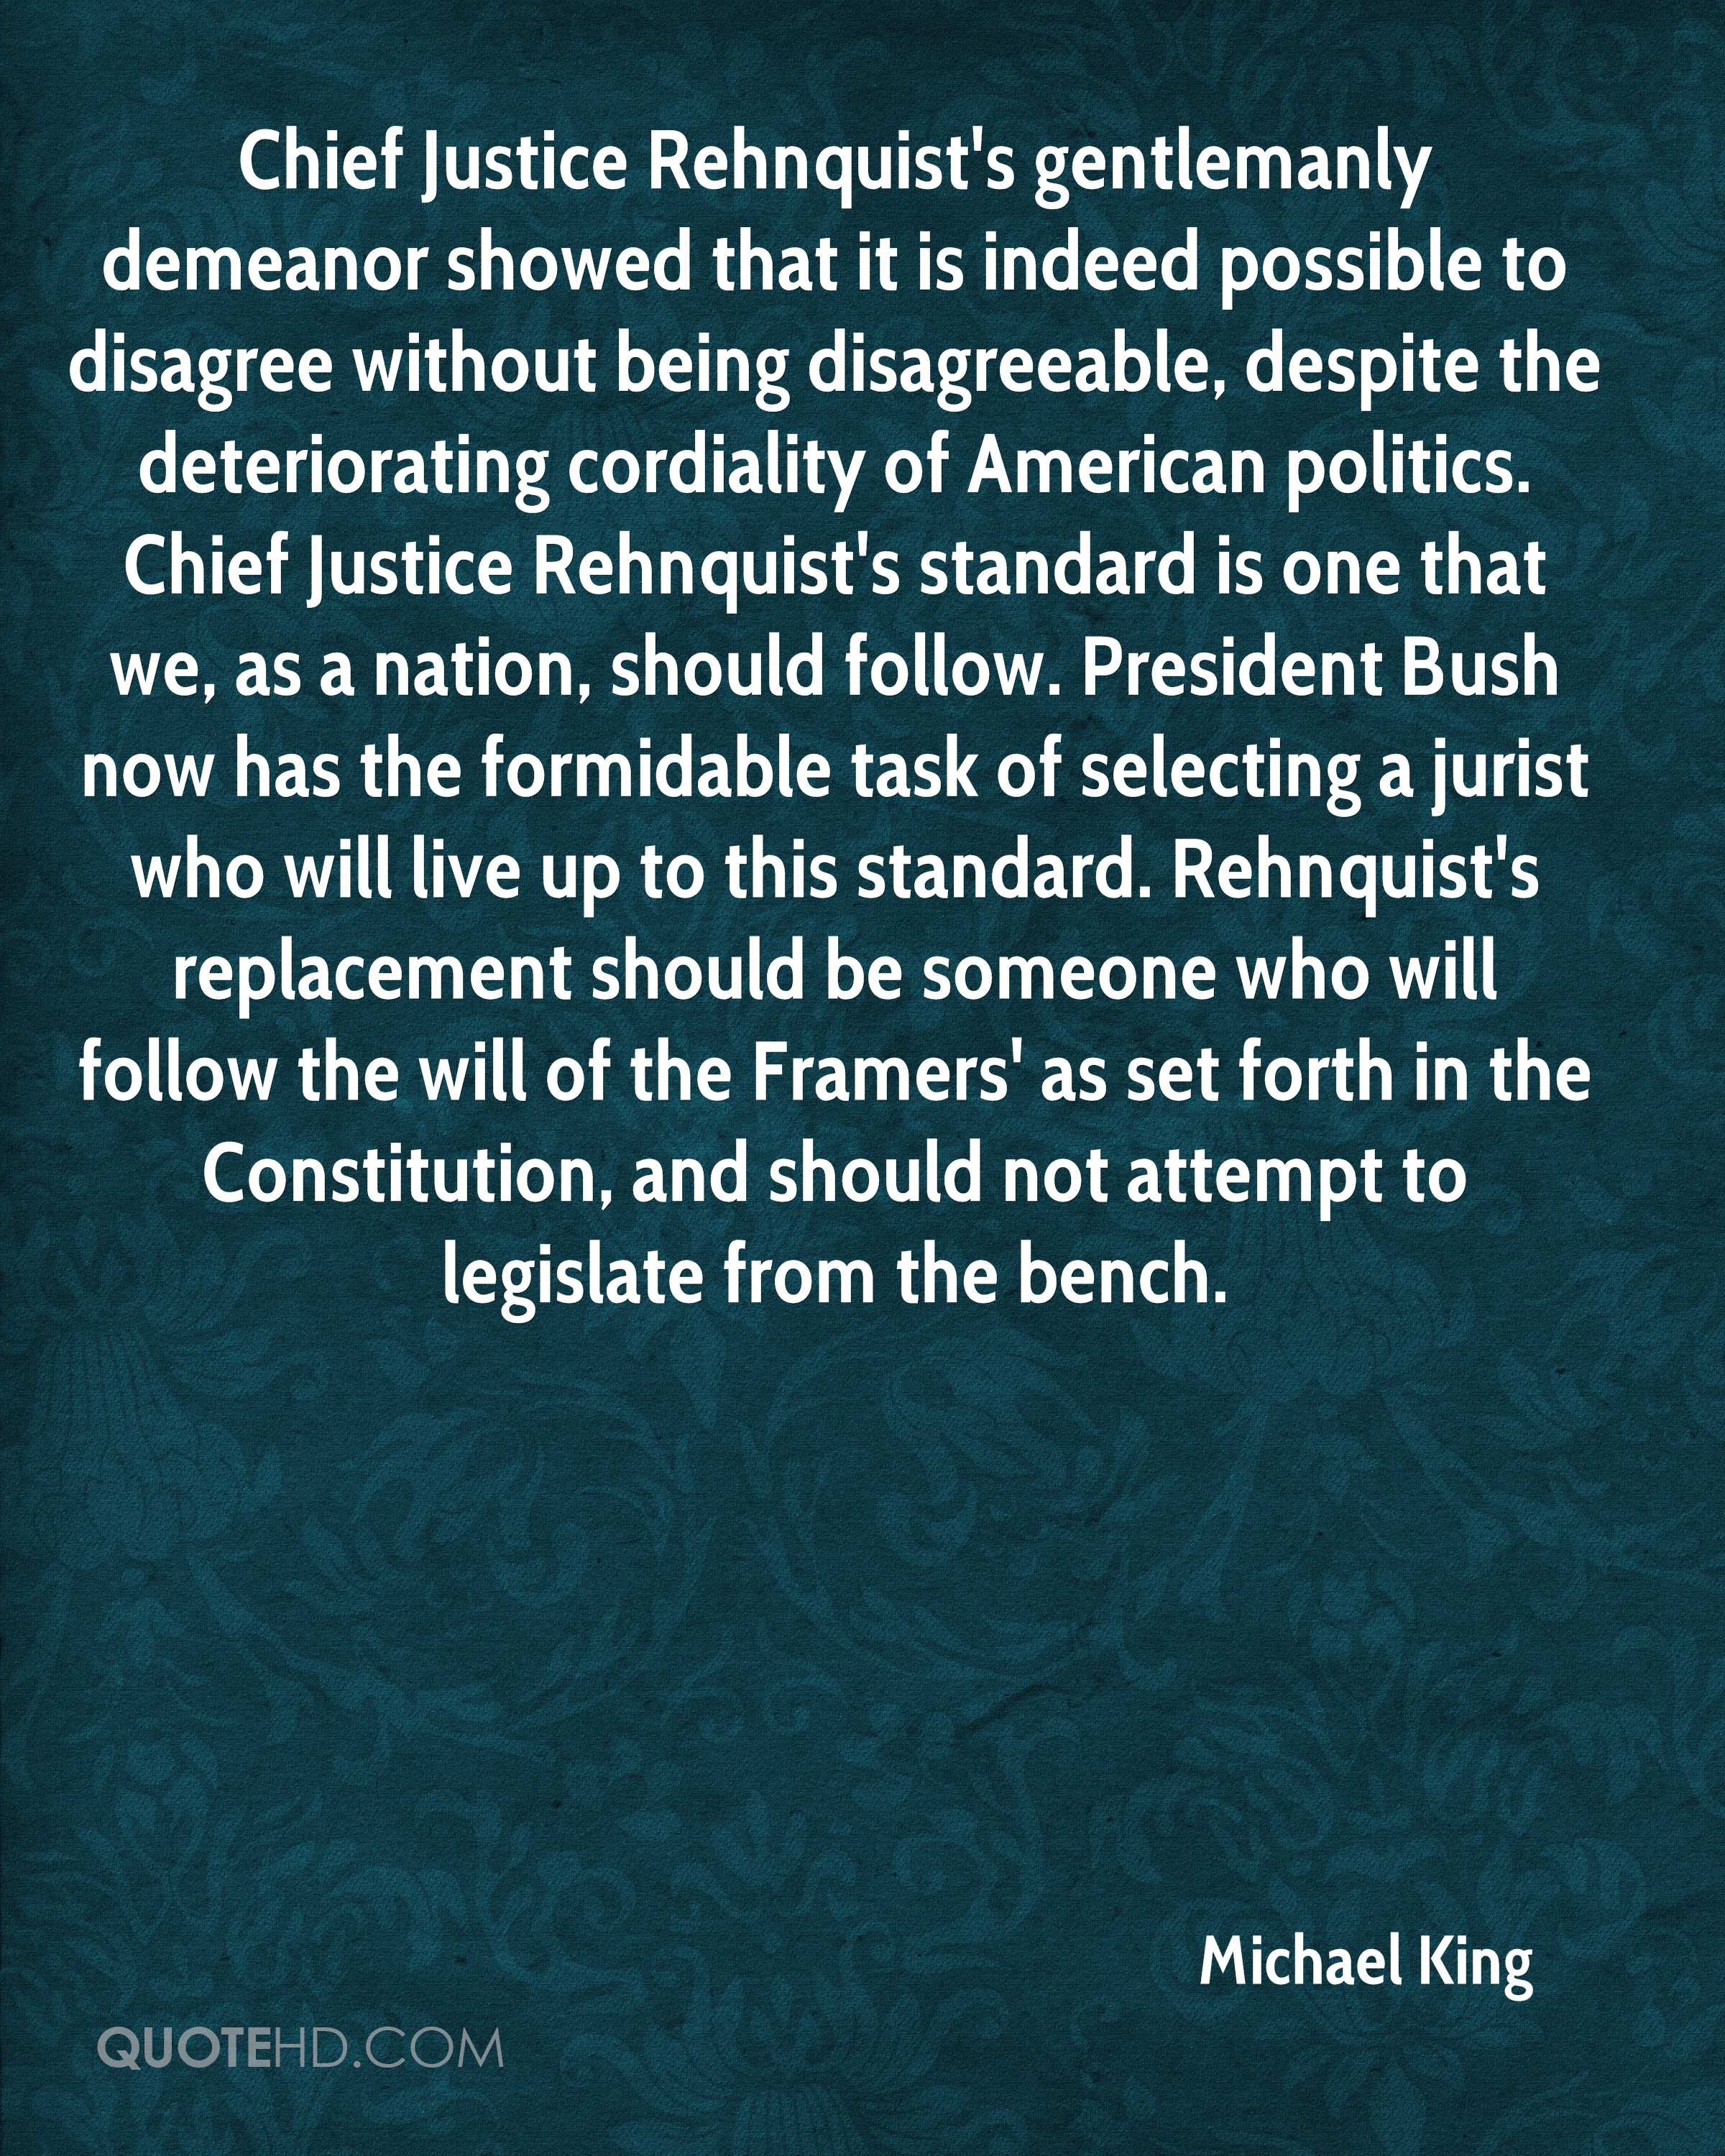 Chief Justice Rehnquist's gentlemanly demeanor showed that it is indeed possible to disagree without being disagreeable, despite the deteriorating cordiality of American politics. Chief Justice Rehnquist's standard is one that we, as a nation, should follow. President Bush now has the formidable task of selecting a jurist who will live up to this standard. Rehnquist's replacement should be someone who will follow the will of the Framers' as set forth in the Constitution, and should not attempt to legislate from the bench.